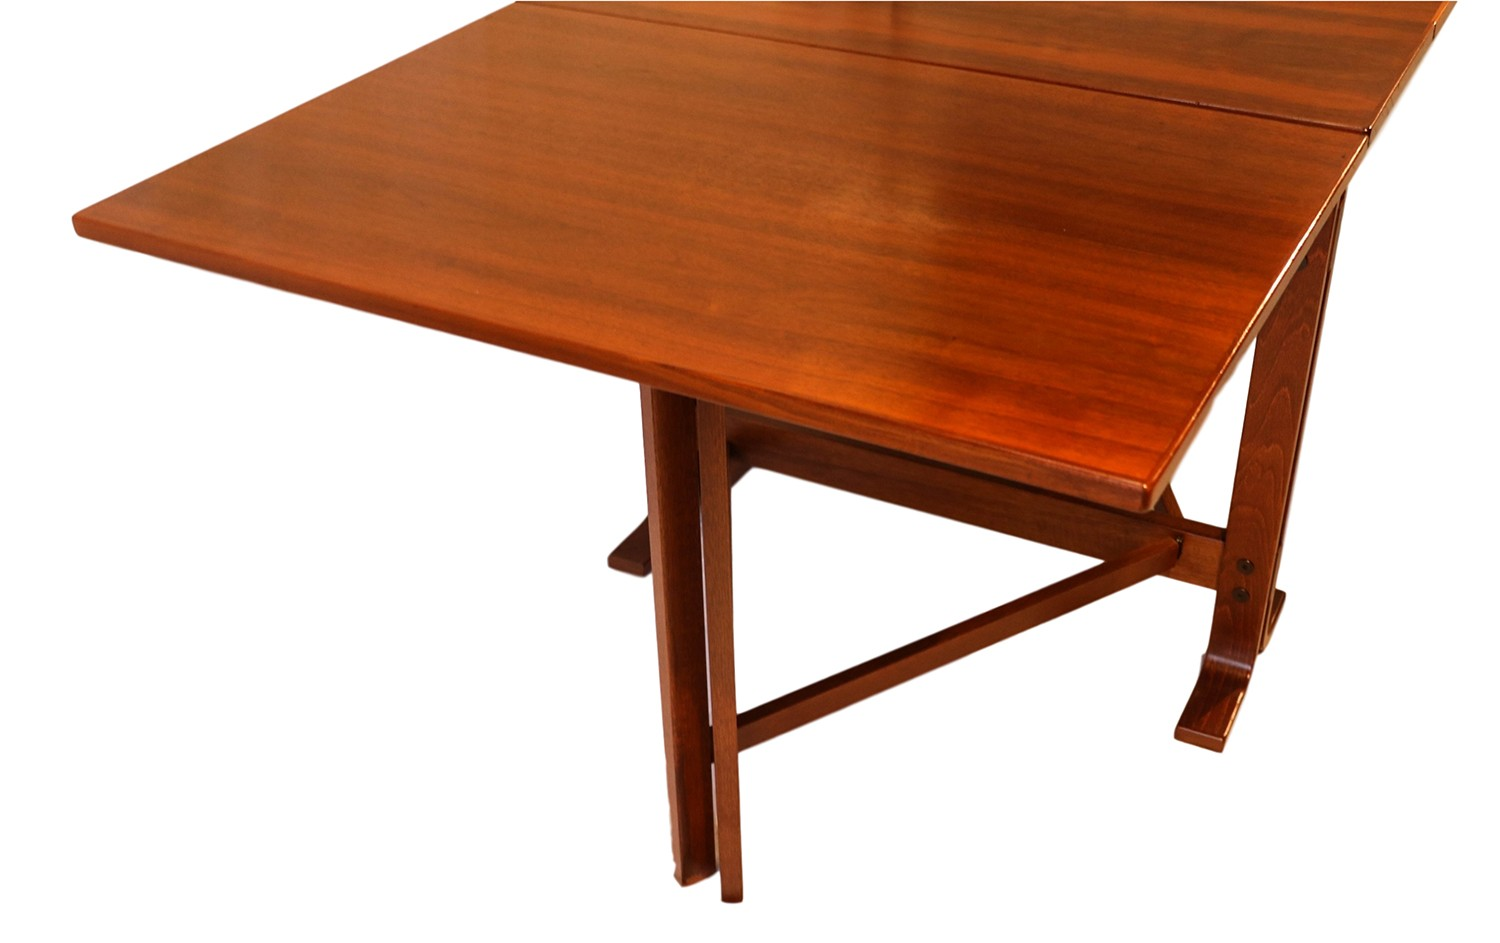 Danish Drop Leaf Teak Dining Table Bruno Mathsson Style - Teak dining table with leaf